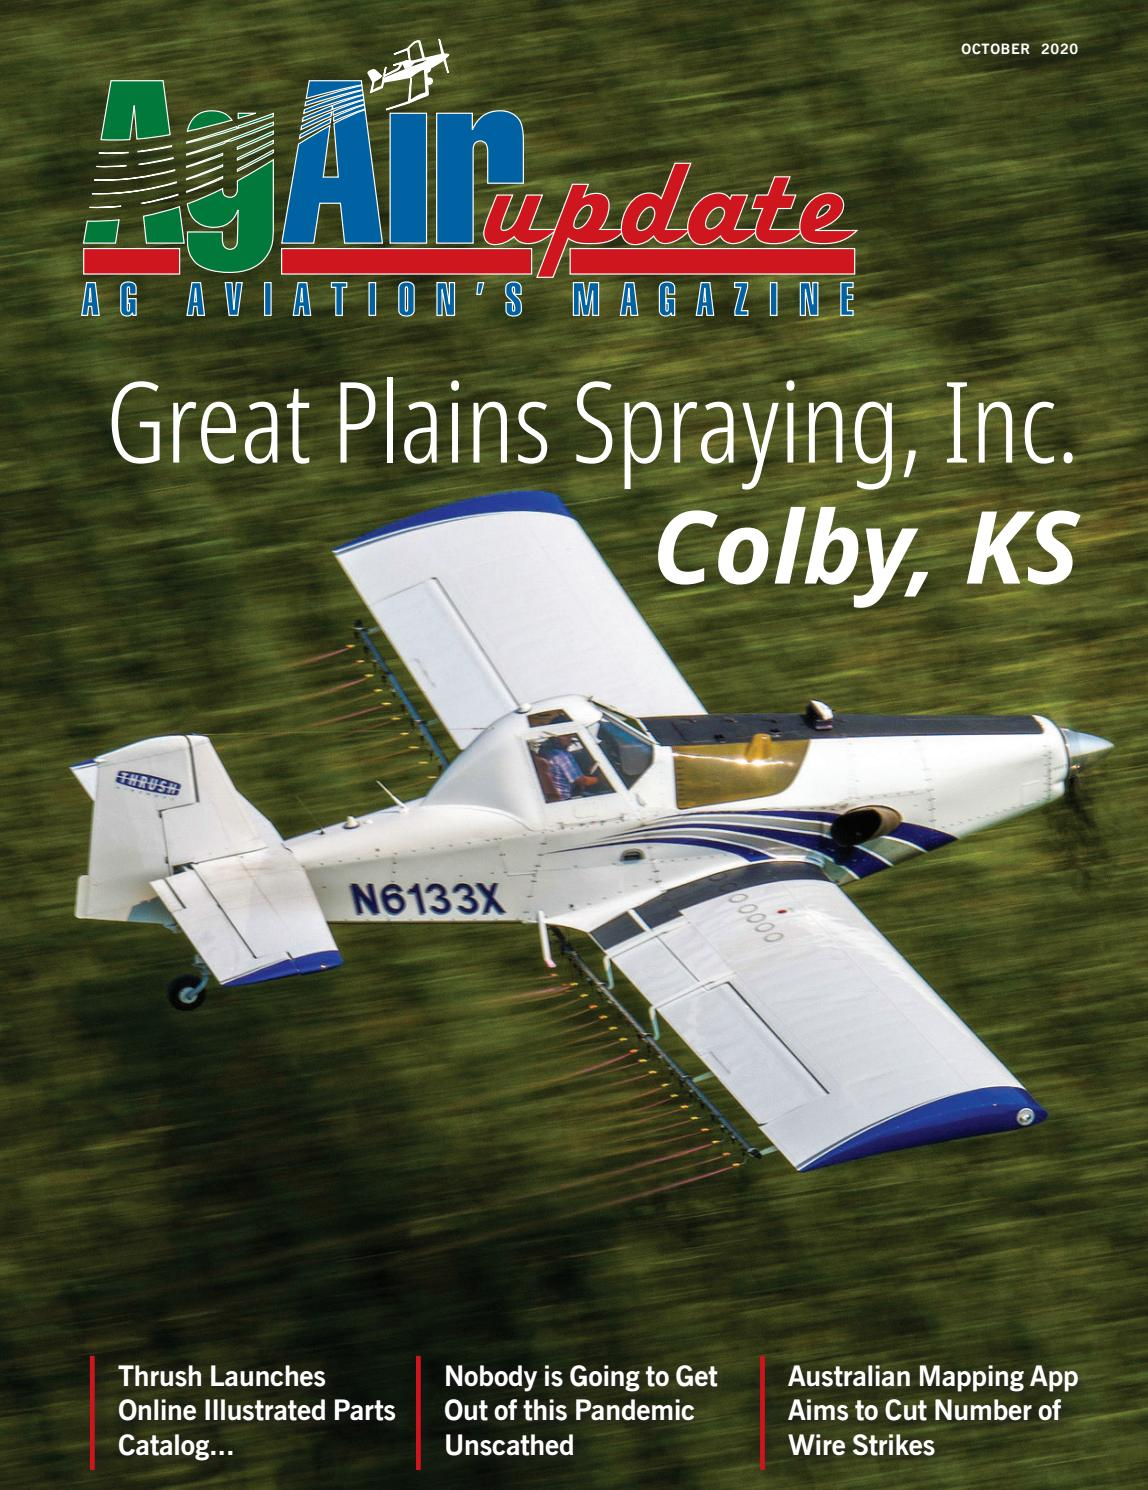 2020 Christmas Lights Near Colby Kansas October 2020   U.S. Edition in English by AgAir Update   issuu